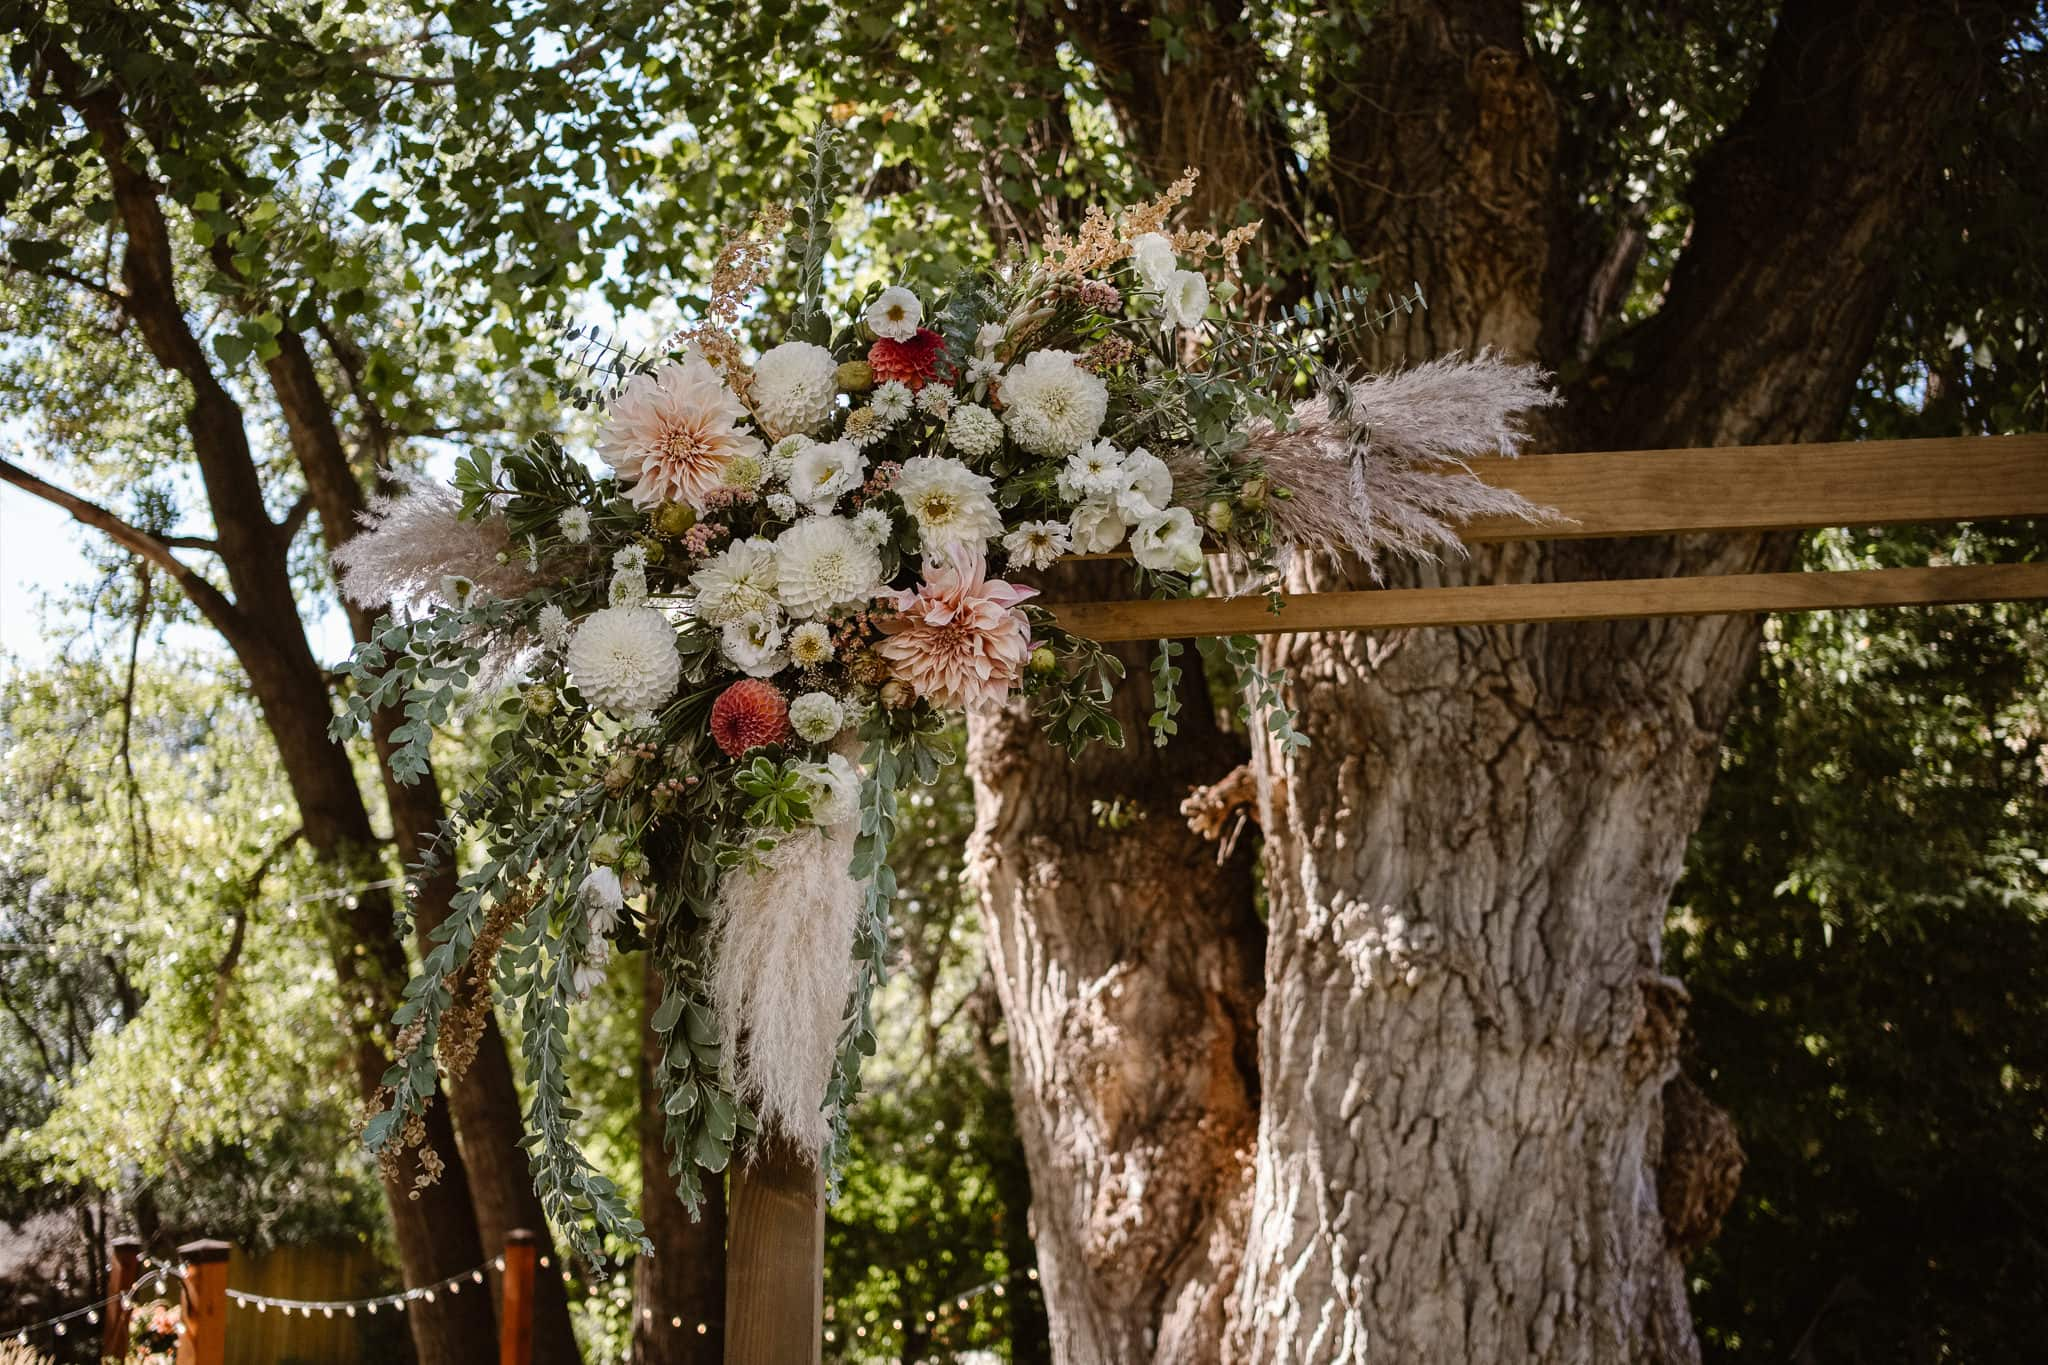 Lyons Farmette wedding photographer, Colorado intimate wedding photographer, outdoor ceremony site, Colorado wedding venue, wood ceremony arch with floral arrangement